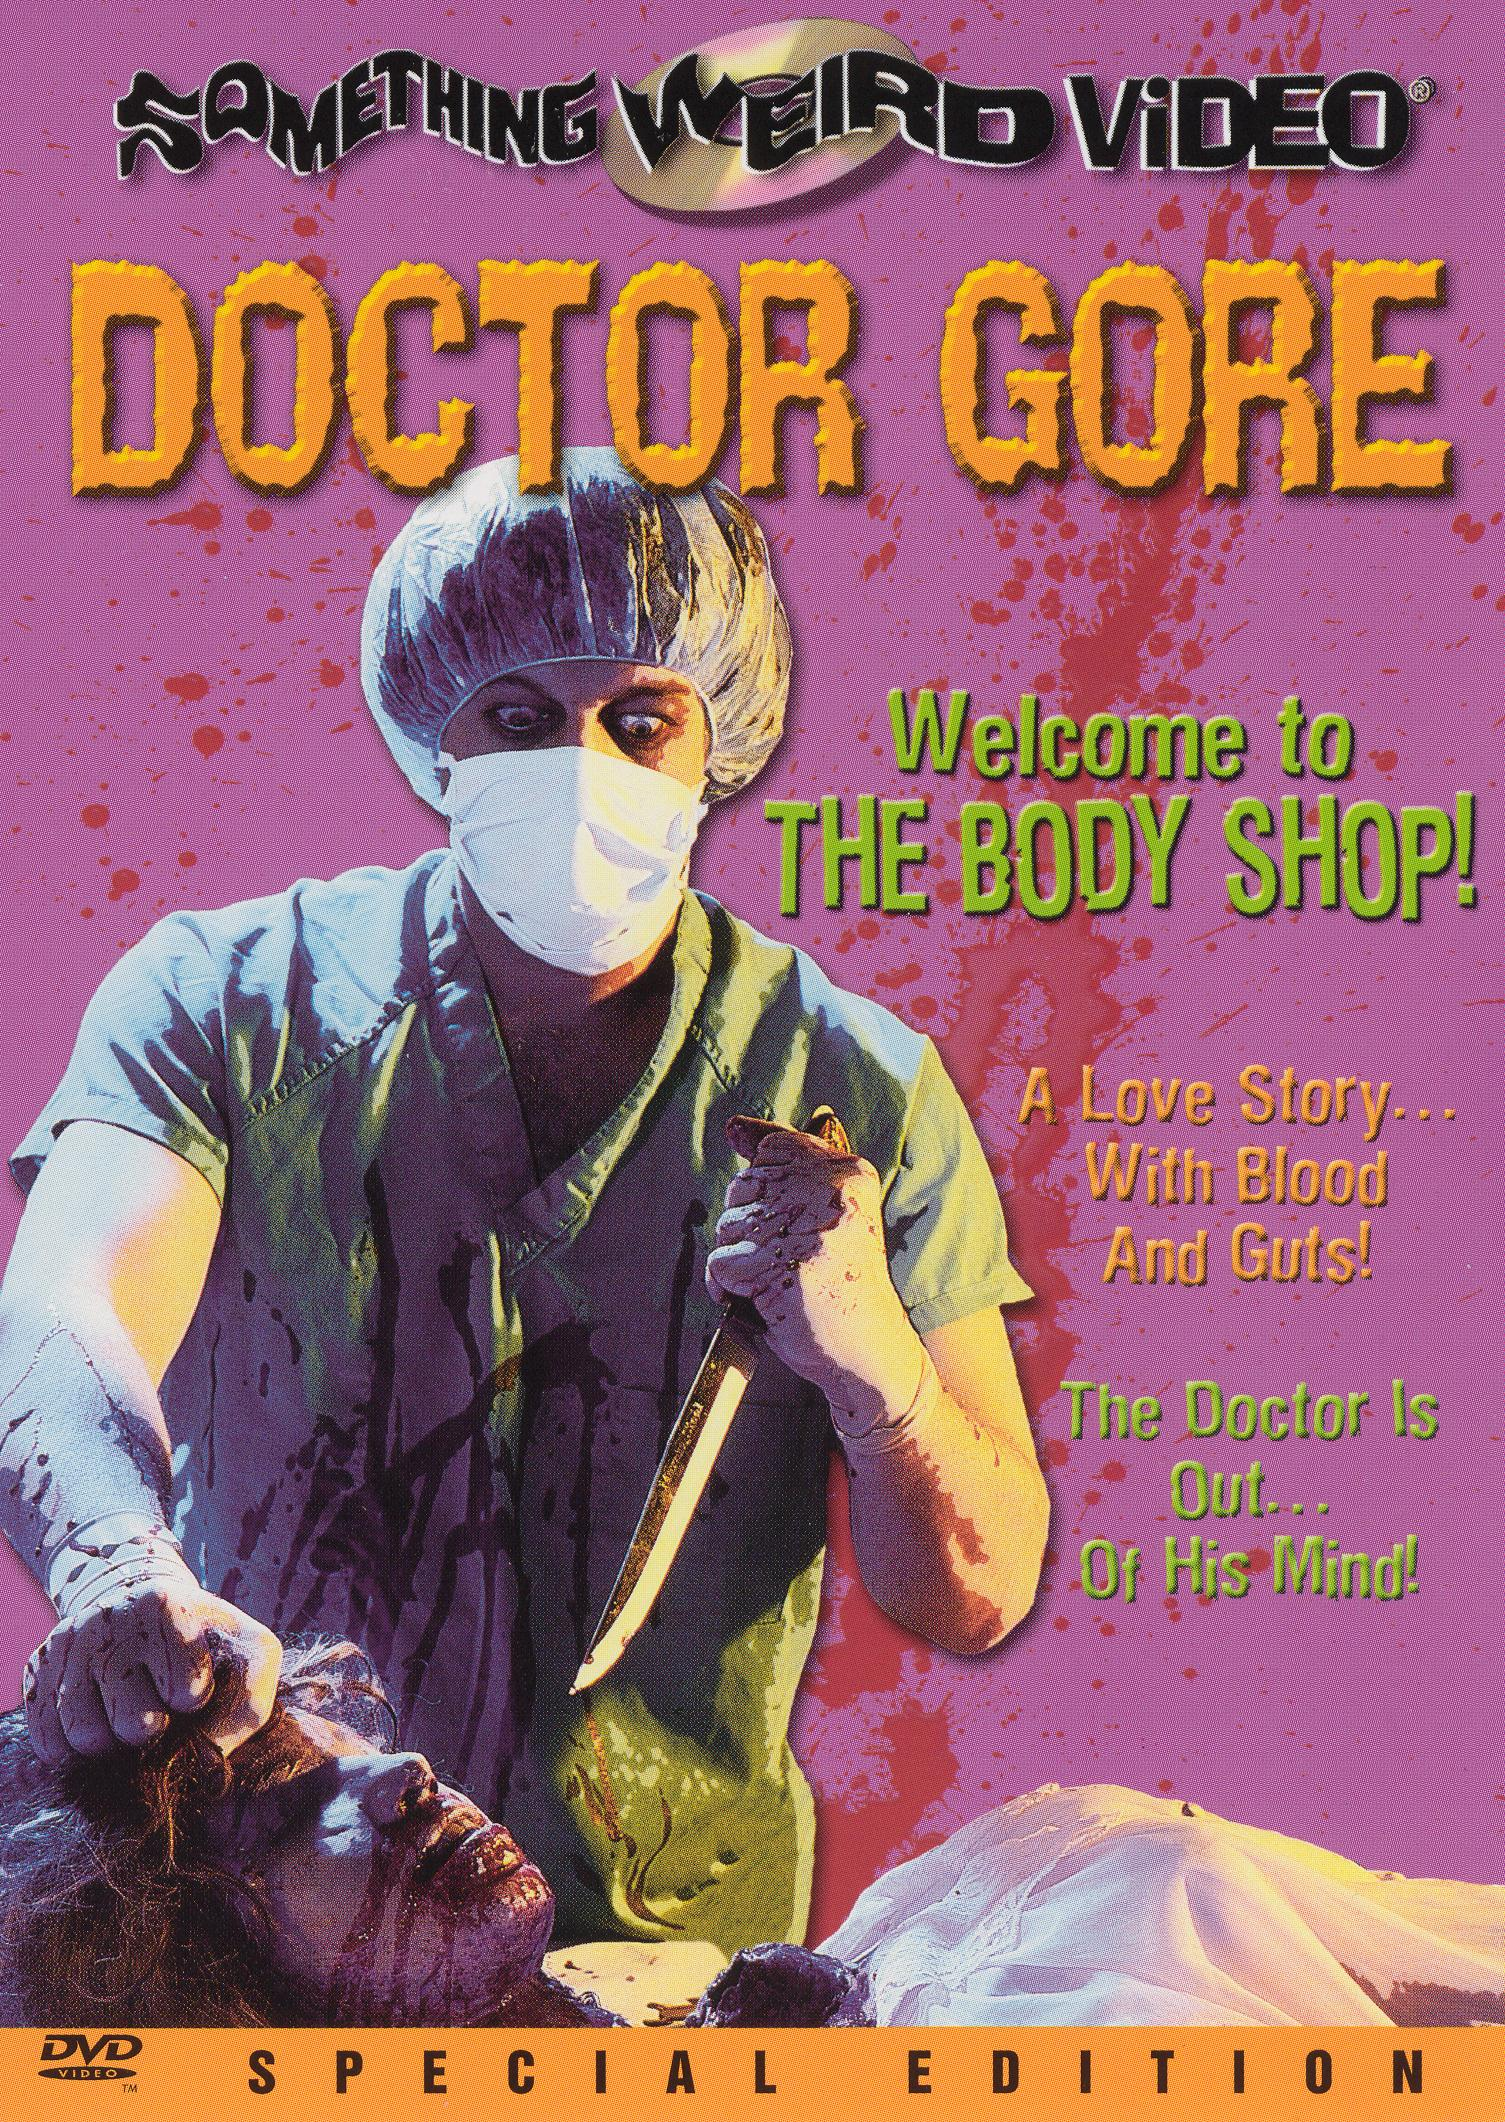 Doctor Gore